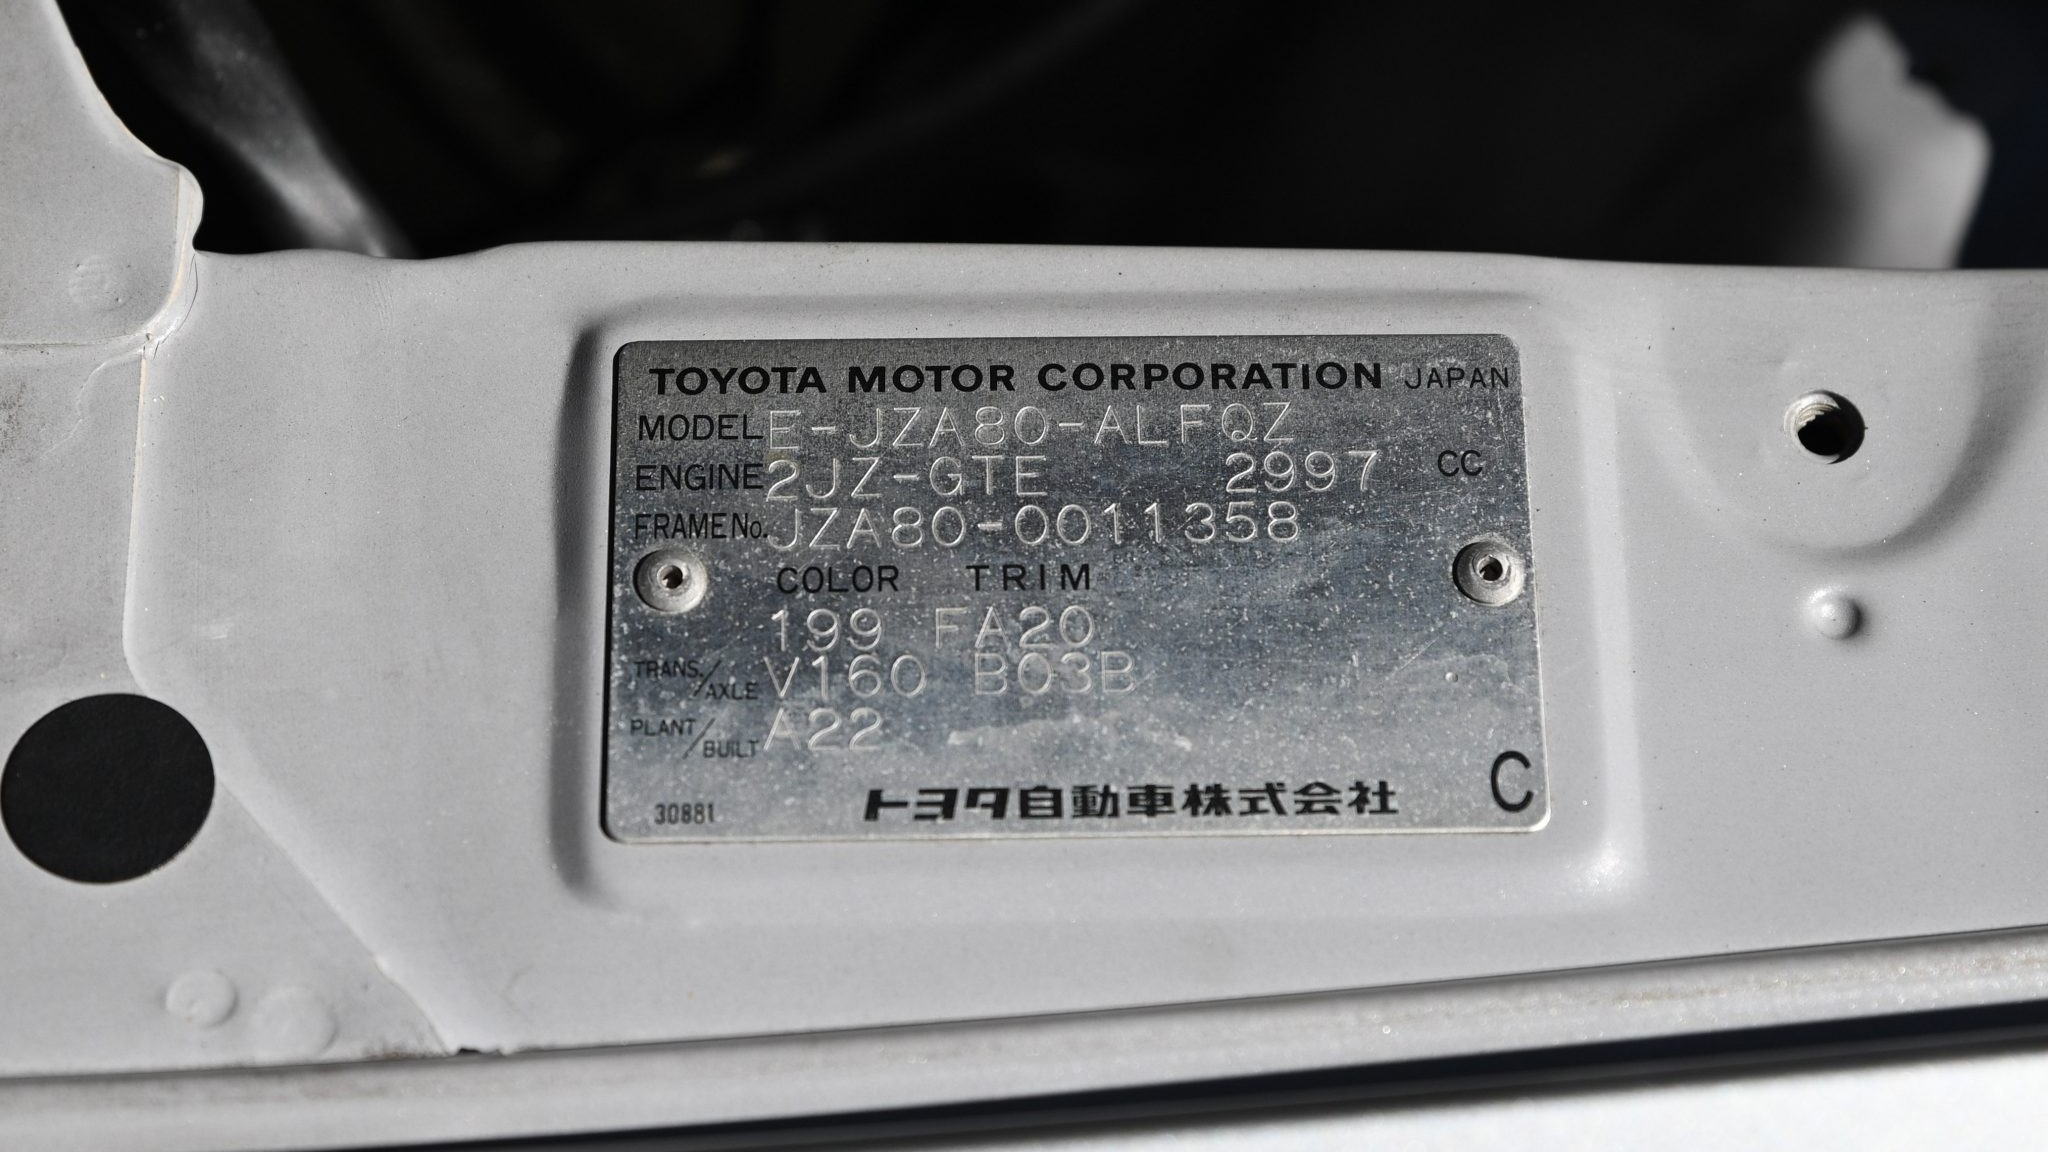 The Toyota RZ Chassis Details